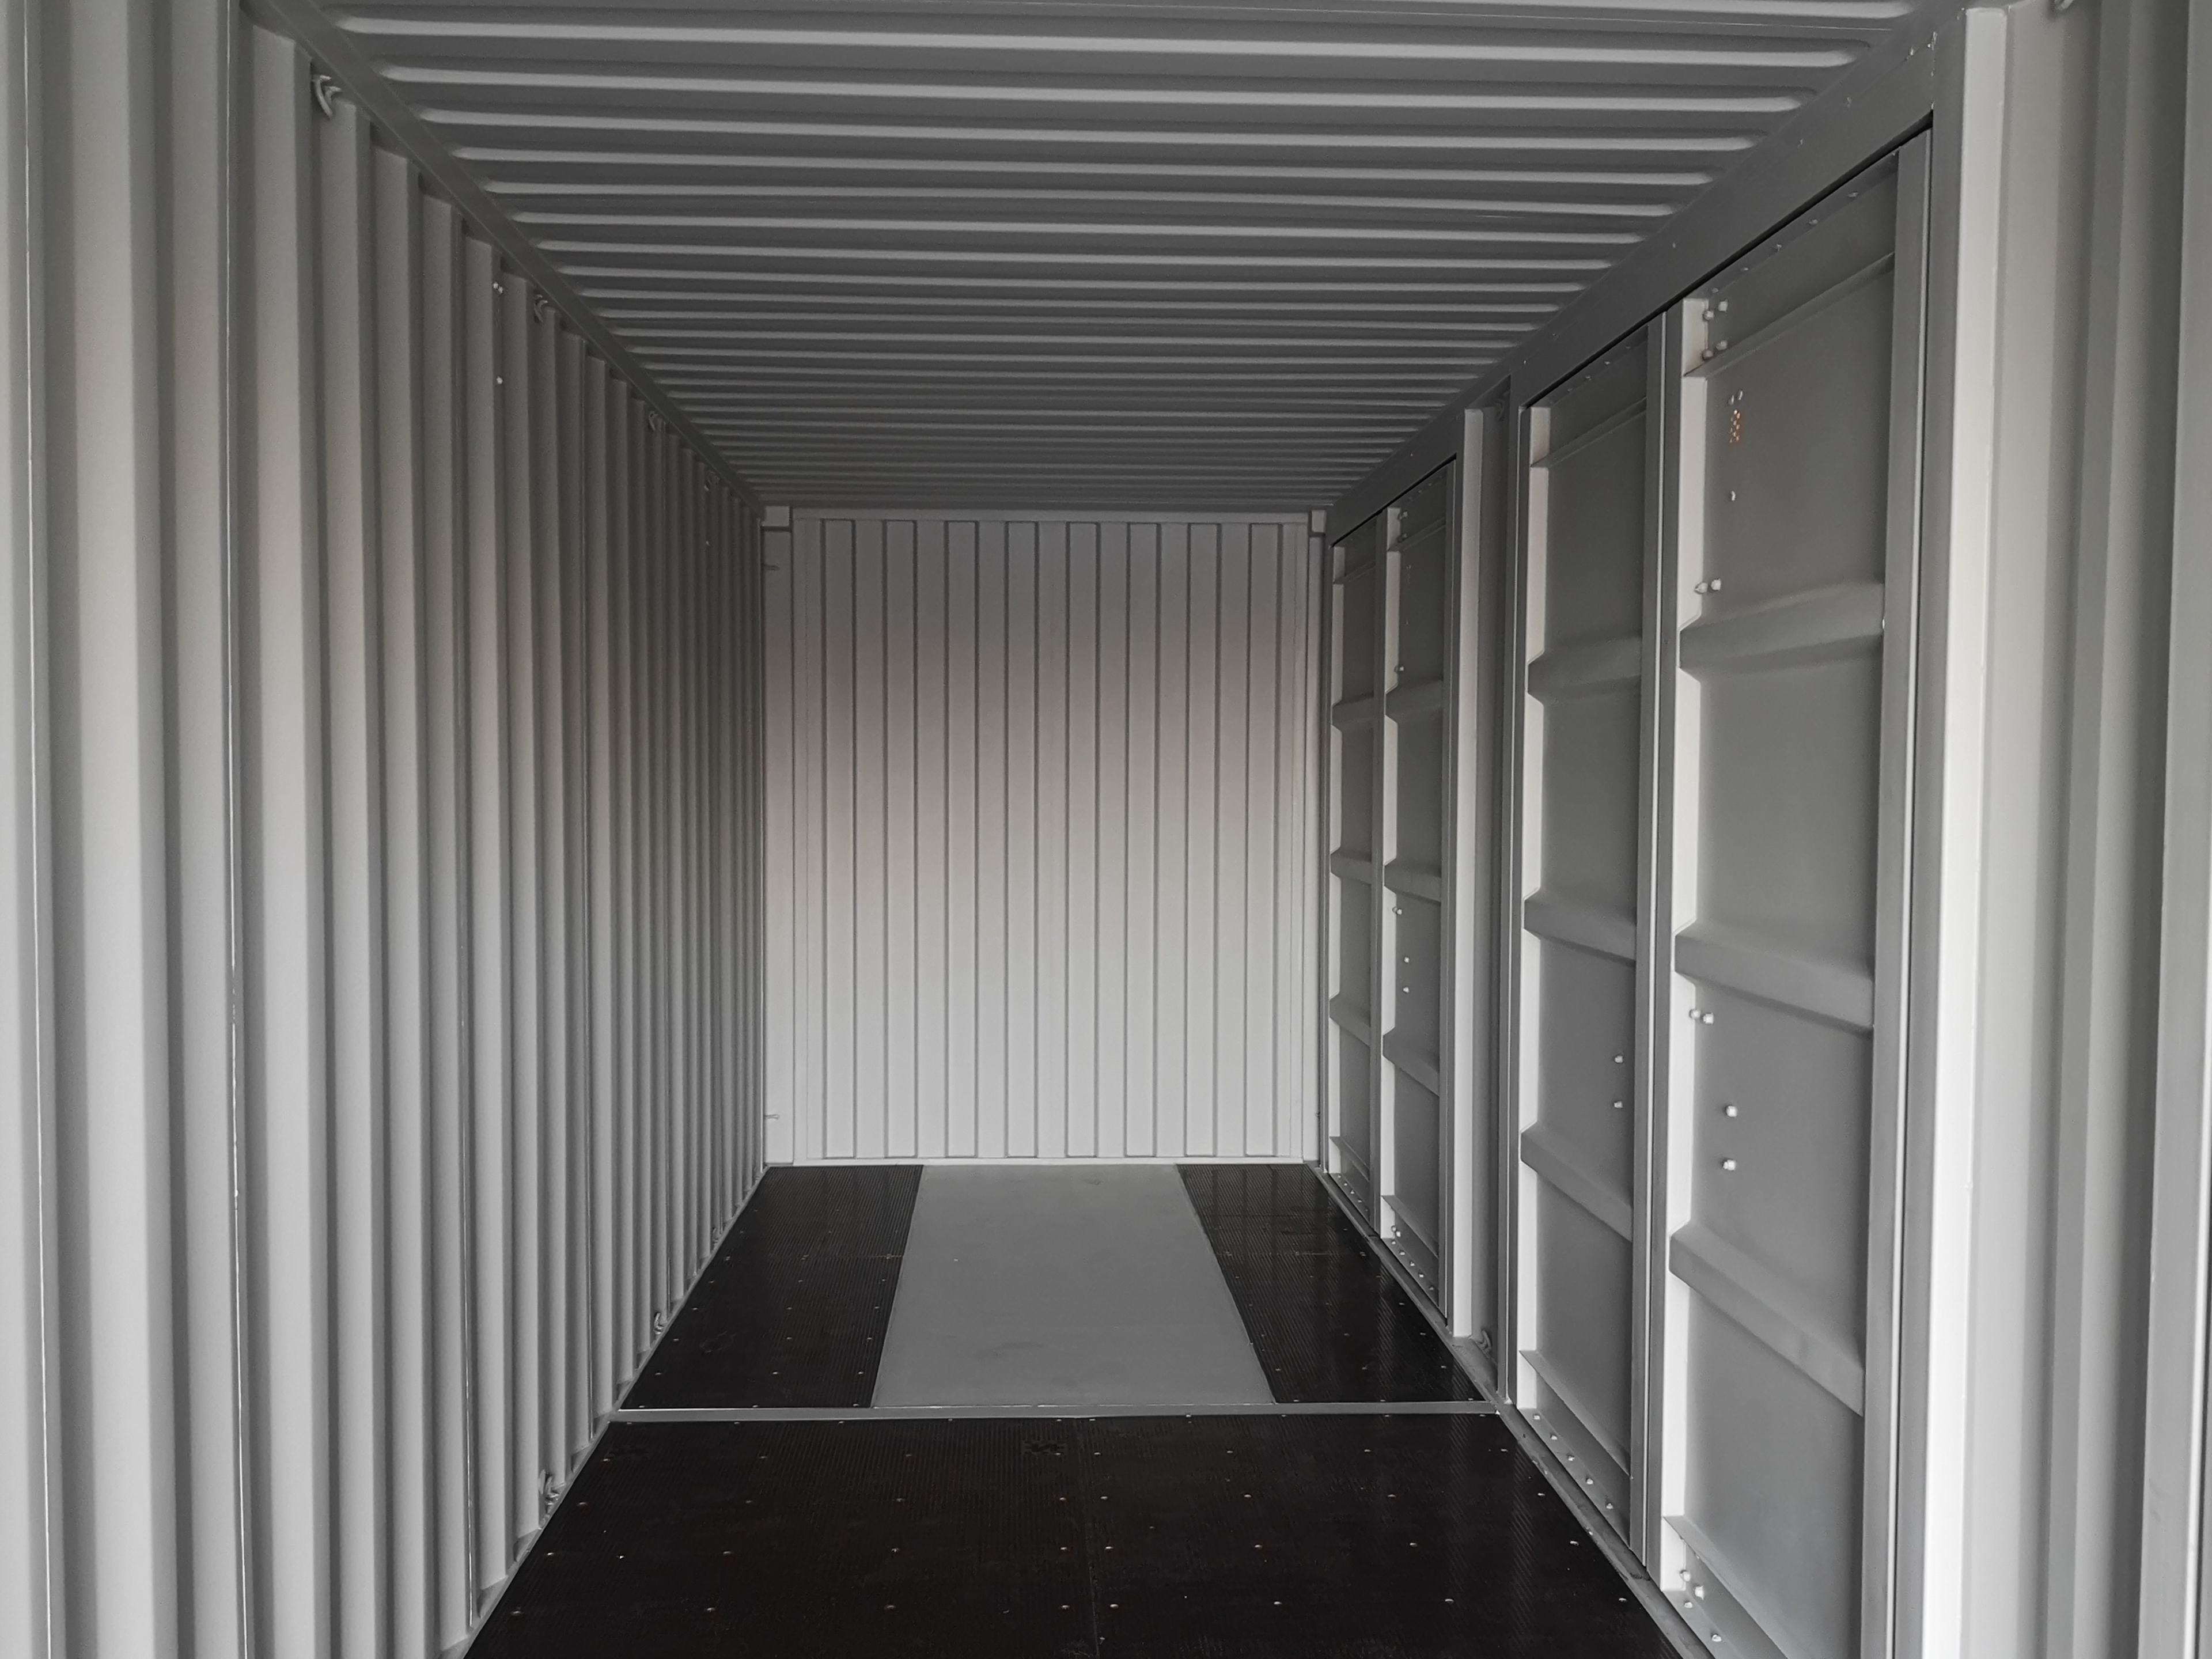 40ft Container with 4 Side Doors